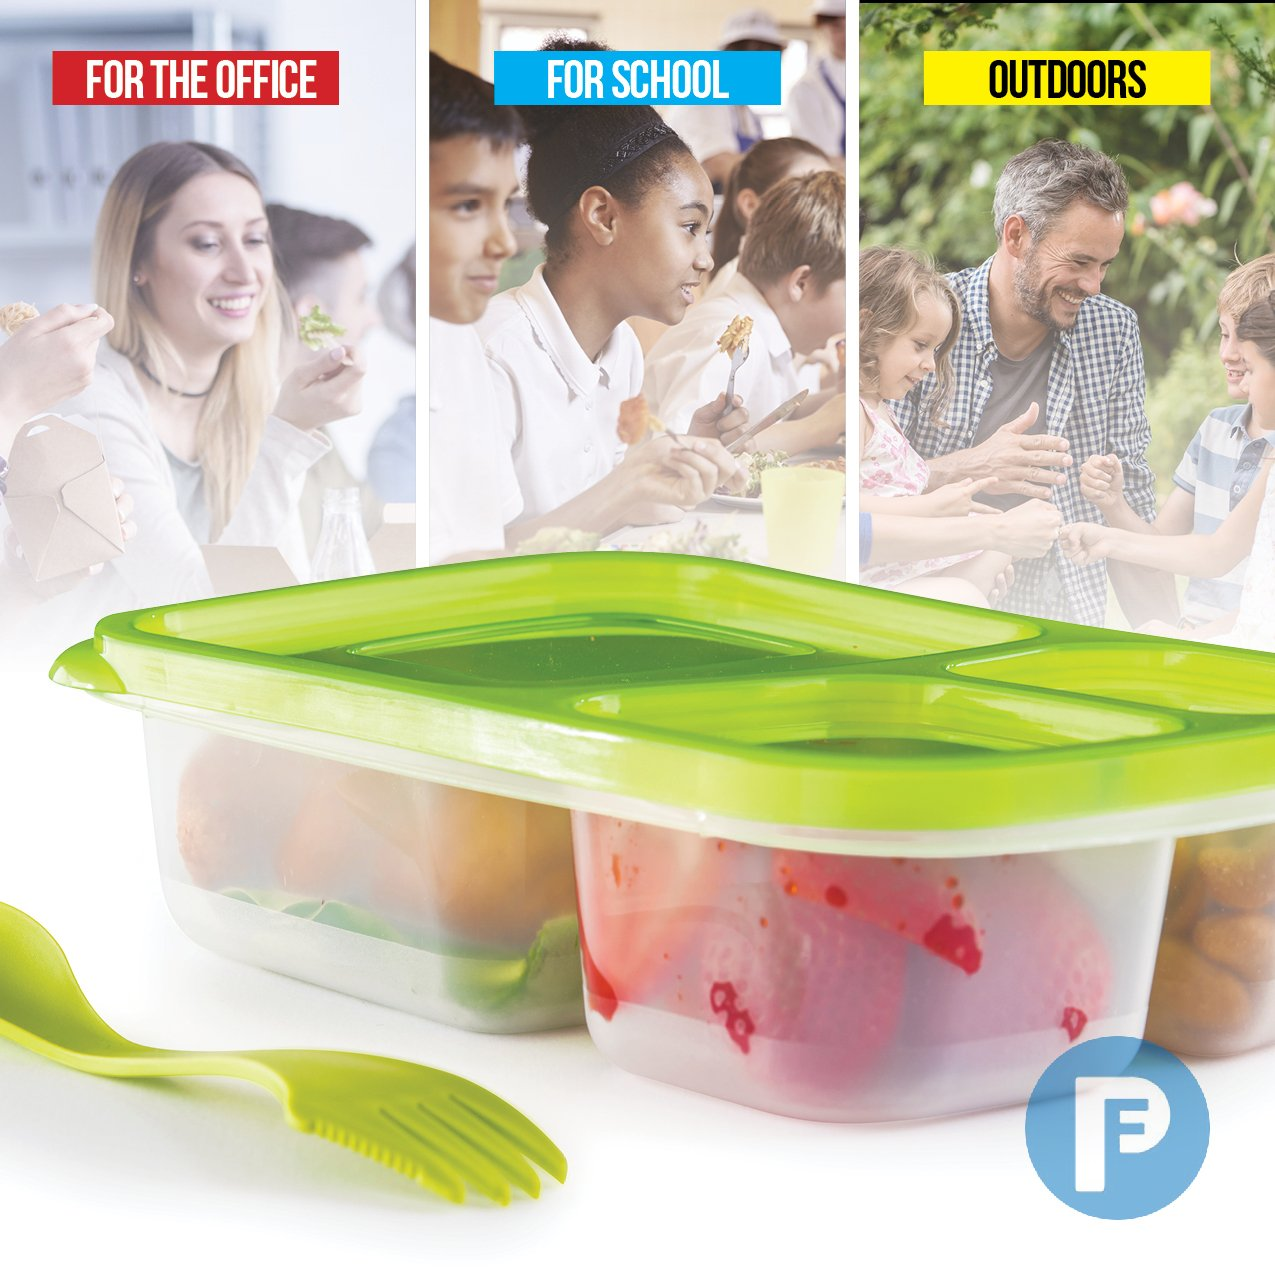 Bento Lunch Box 3 Compartment Food Containers – Set of 10 Storage meal prep Container Boxes– Ideal for Adults, Toddler, Kids, Girls, and Boys – Free 2-in-1 Fork/Spoon & Puzzle Sandwich Cutter by Perfect Fit (Image #5)